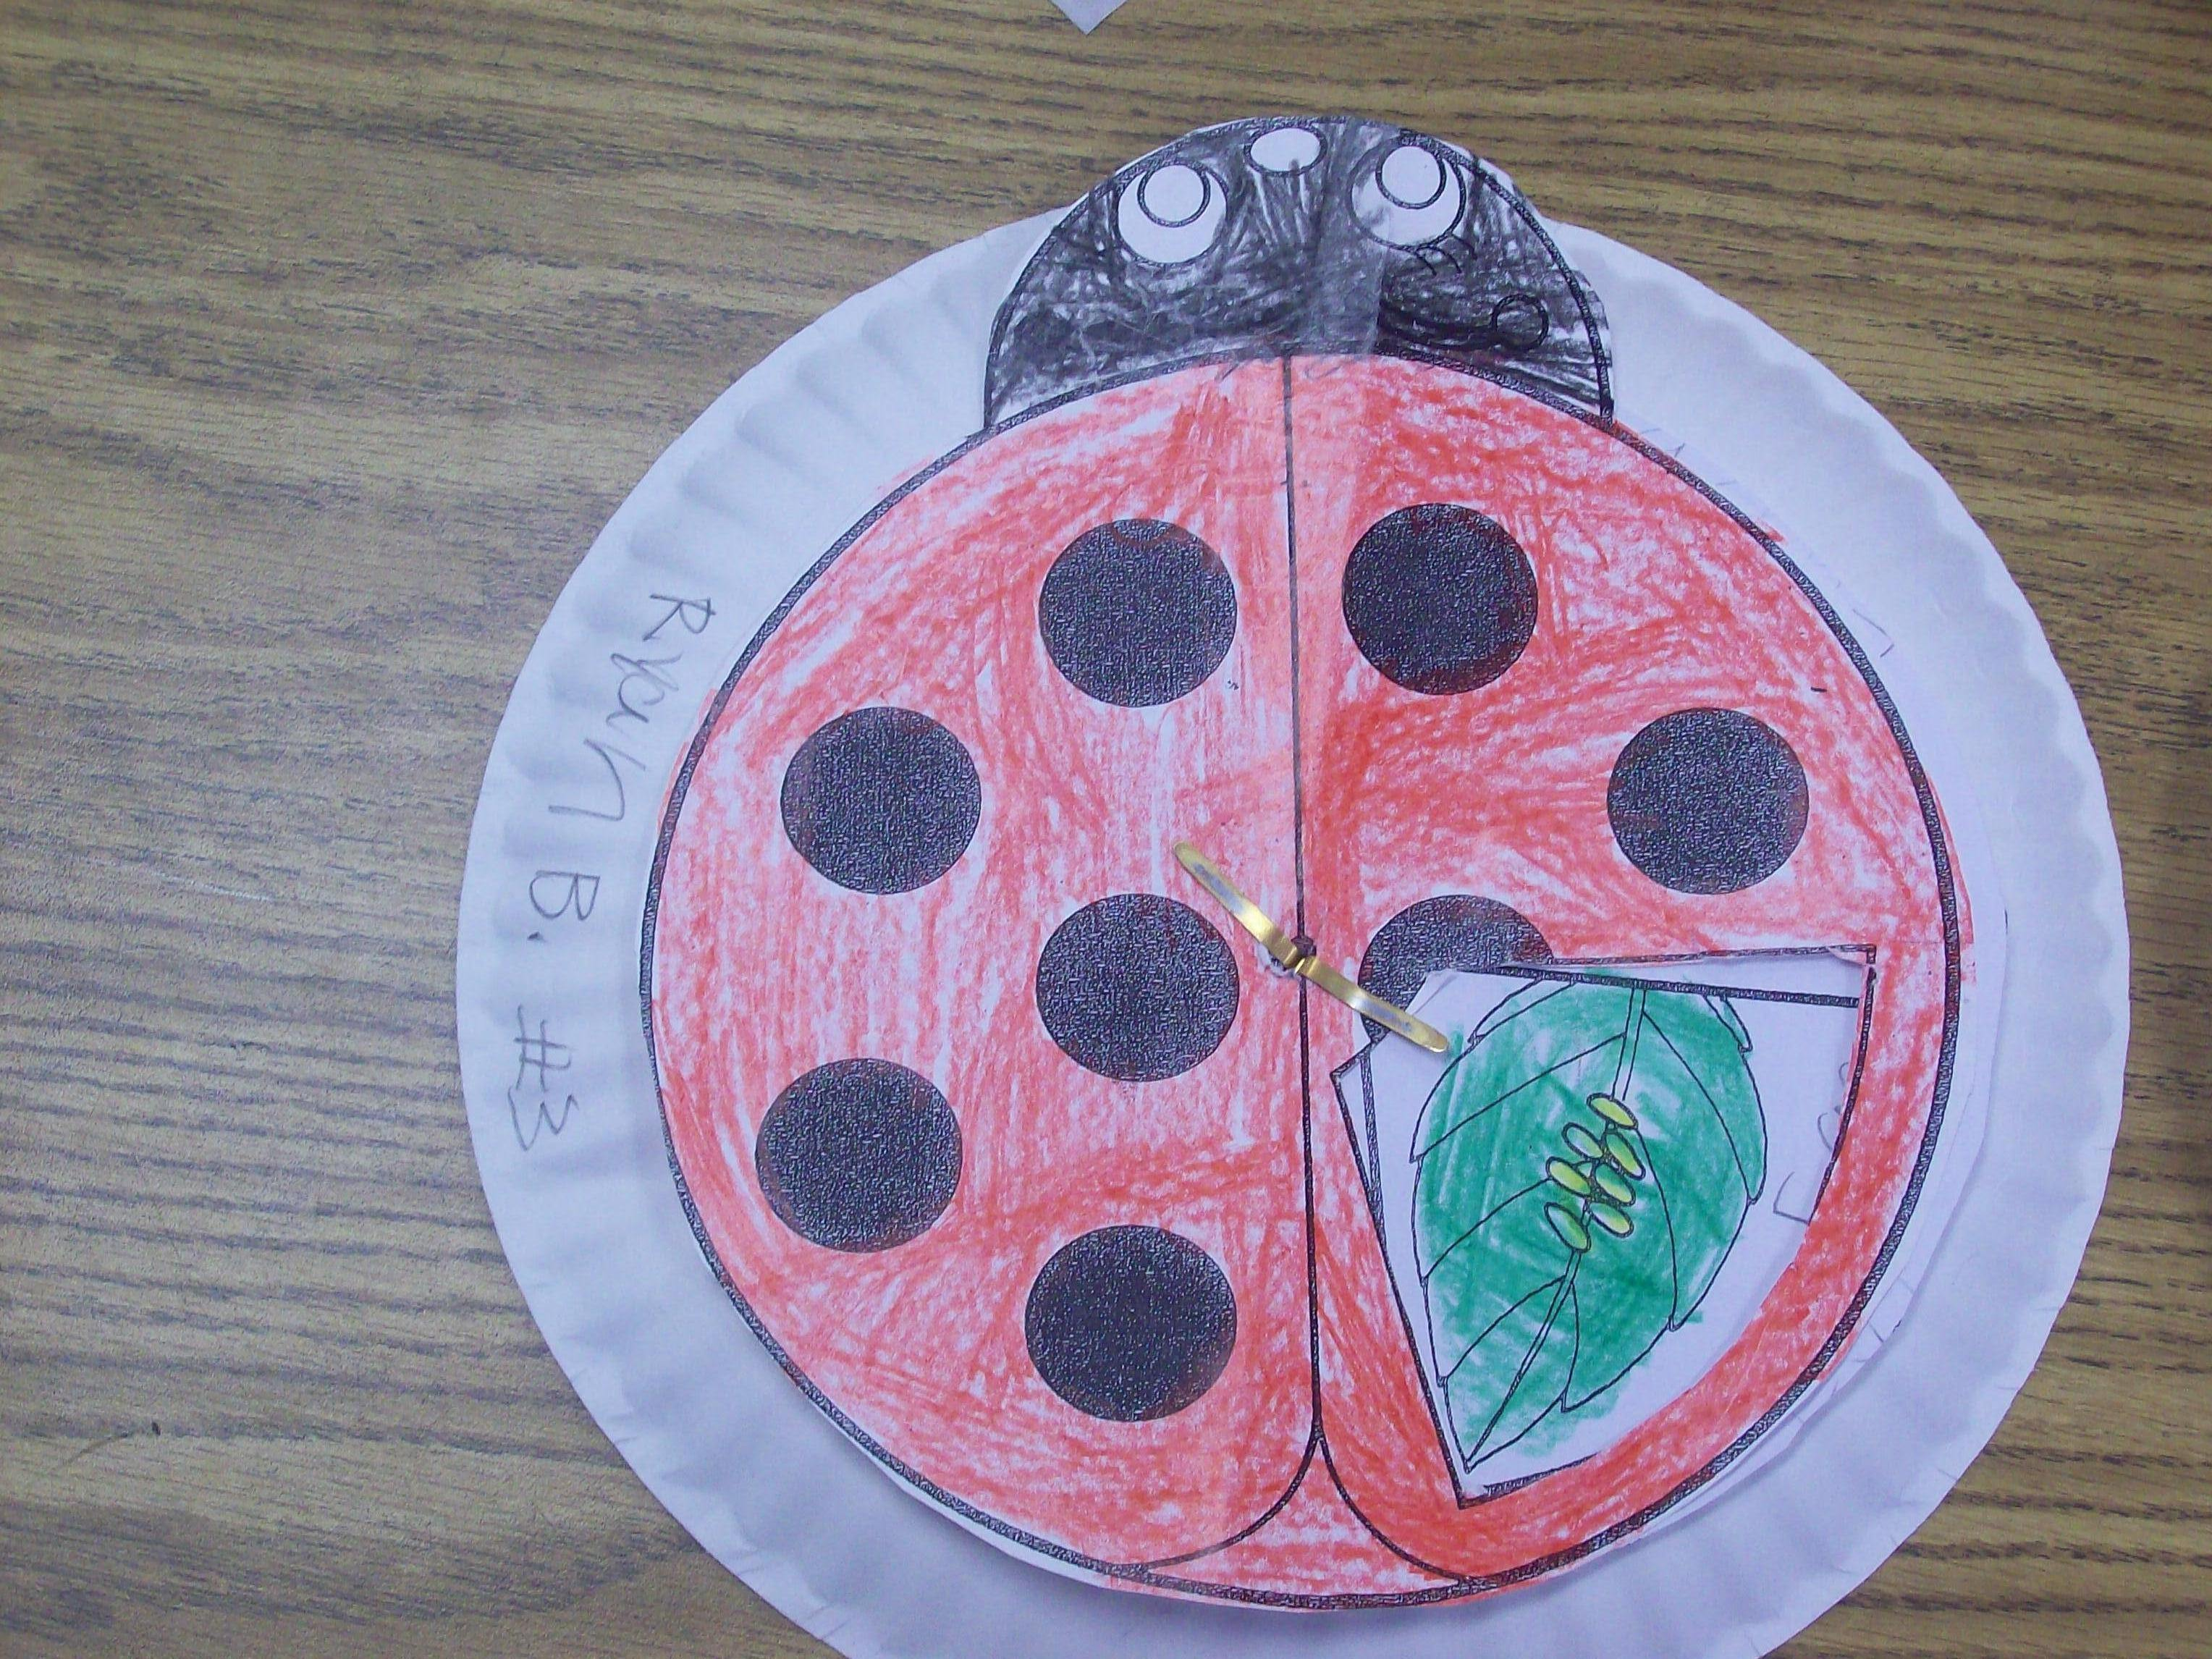 project ladybug Project ladybug 18,463 likes 9 talking about this project ladybug prides itself on bringing financial & emotional hope to children suffering from.